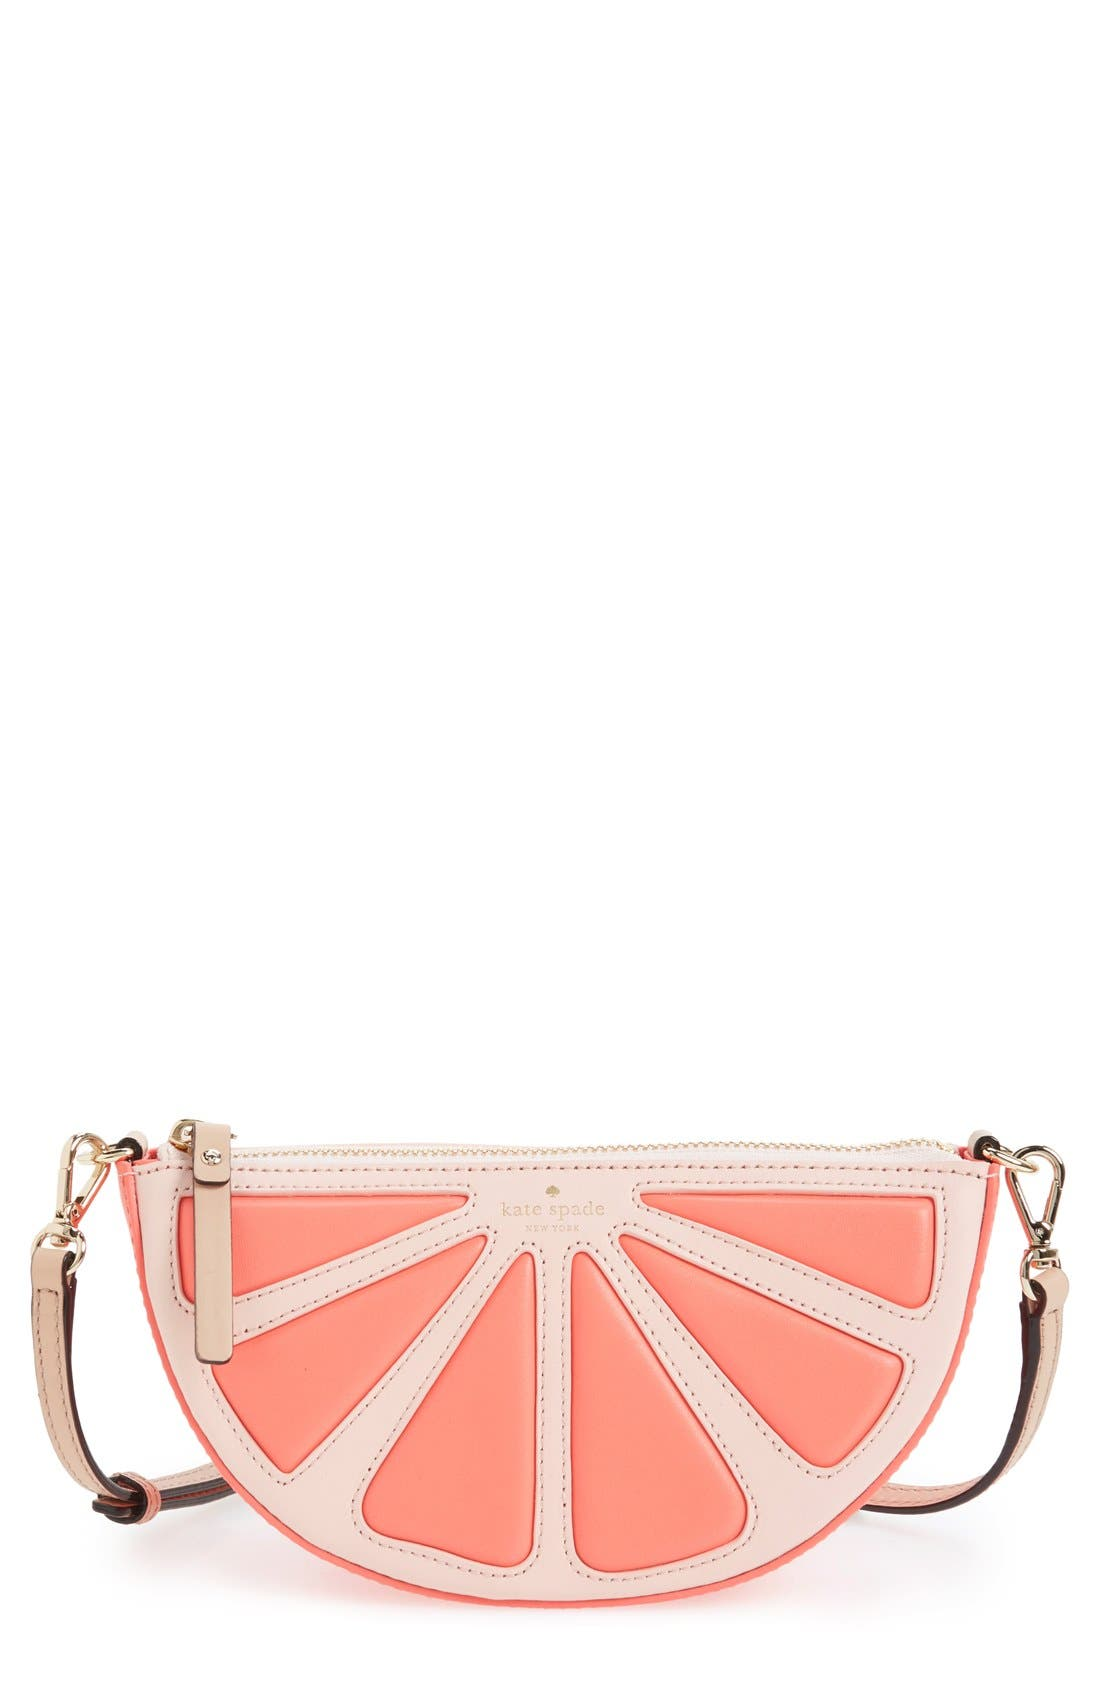 Alternate Image 1 Selected - kate spade new york 'flights of fancy' grapefruit crossbody bag